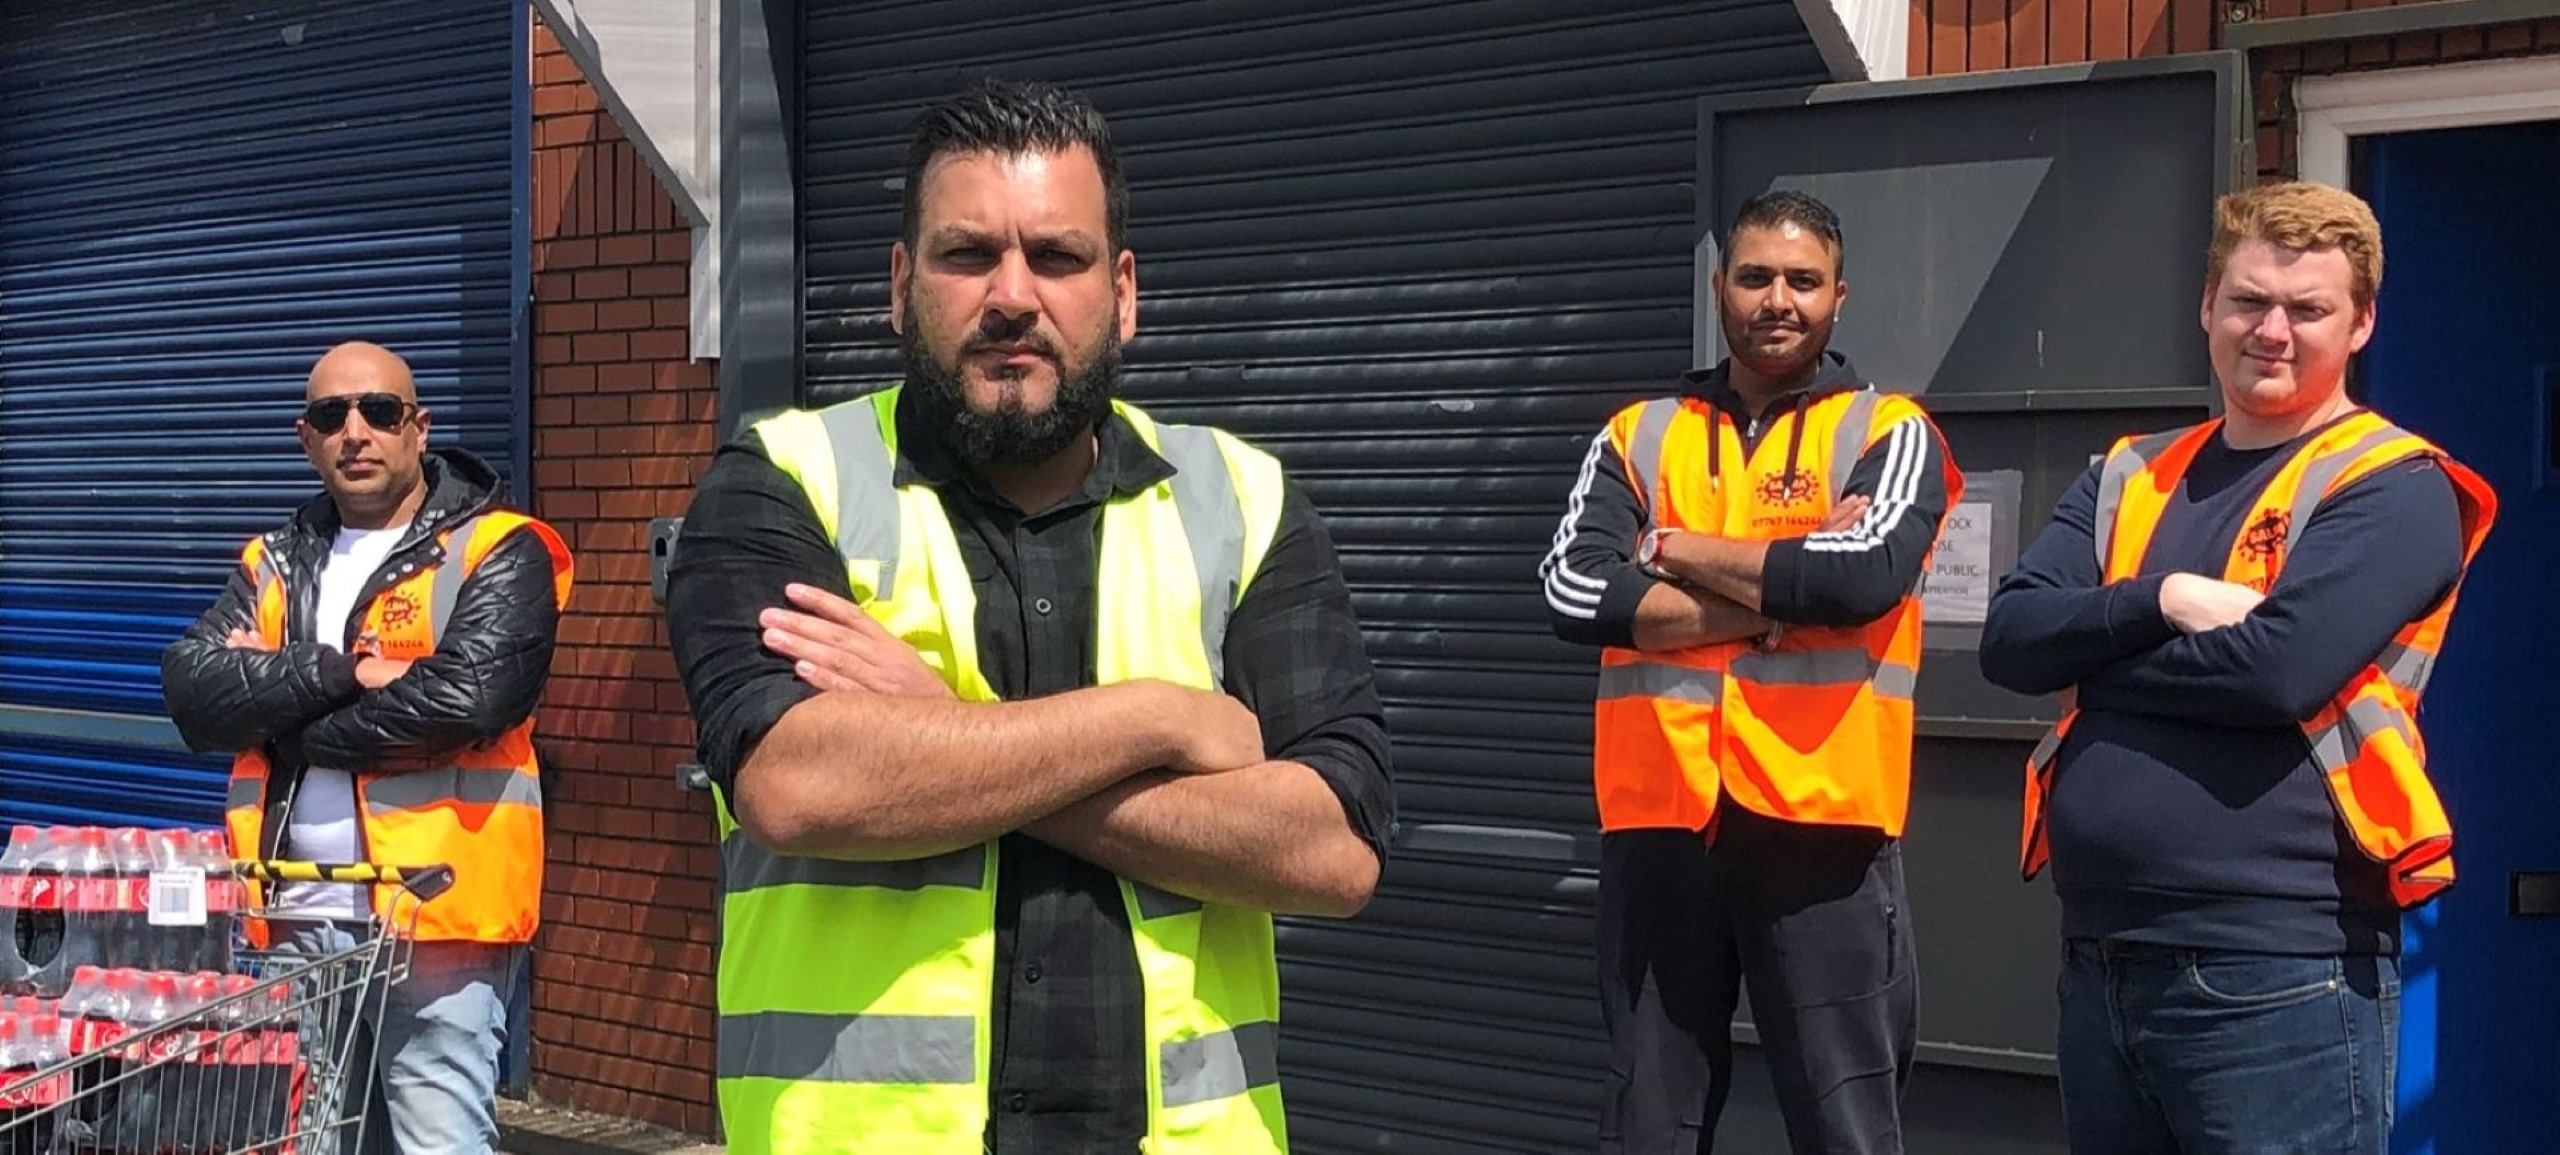 HELPING HANDS: Imran Hameed (second from left) with other Bearded Broz volunteers